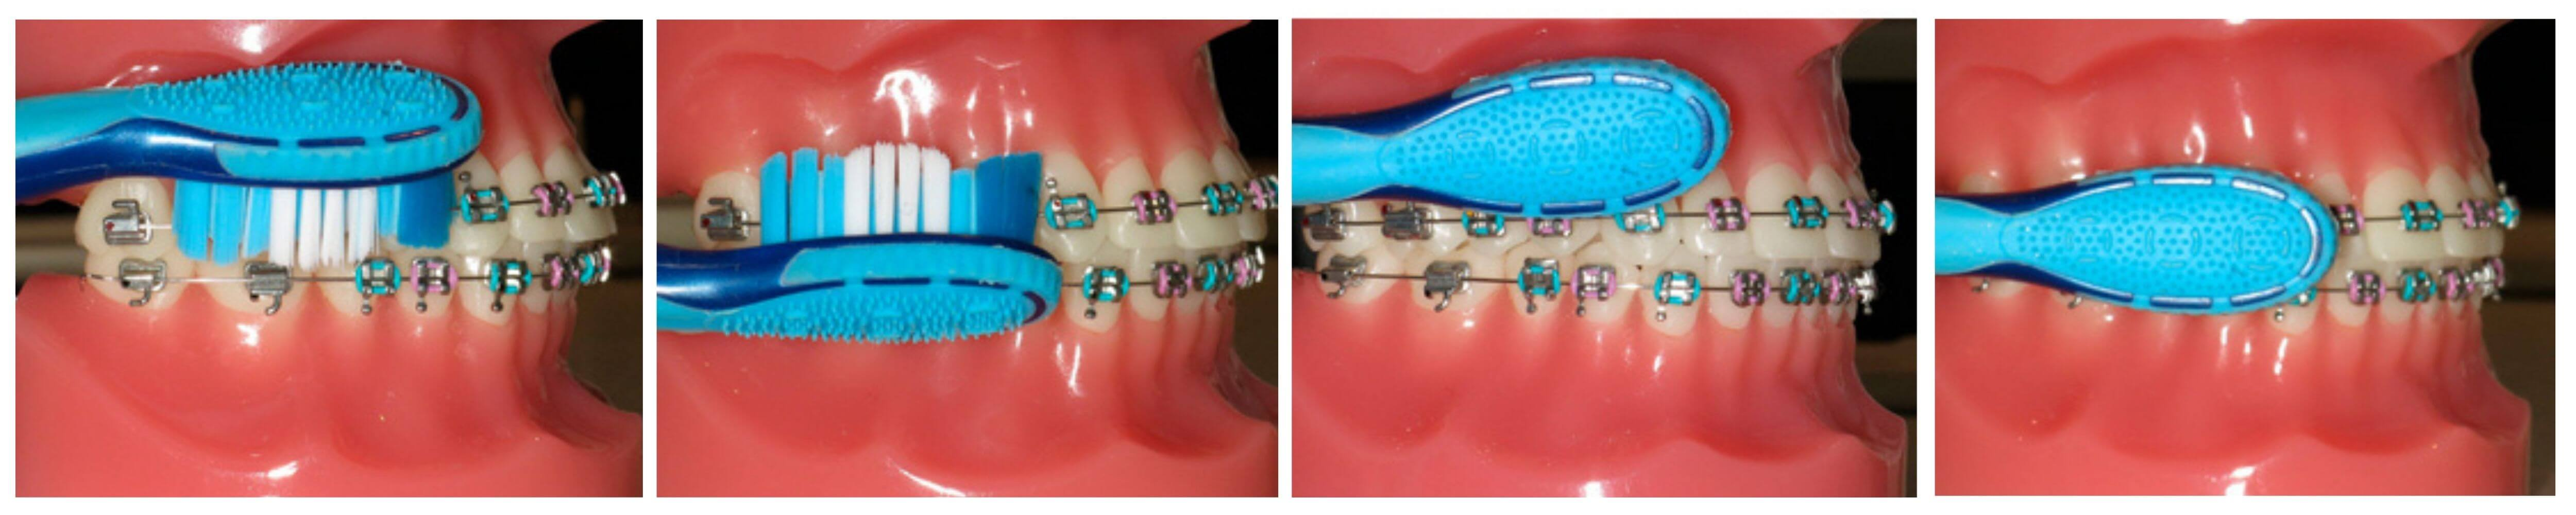 Regular brushing and cleaning is crucial during treatment